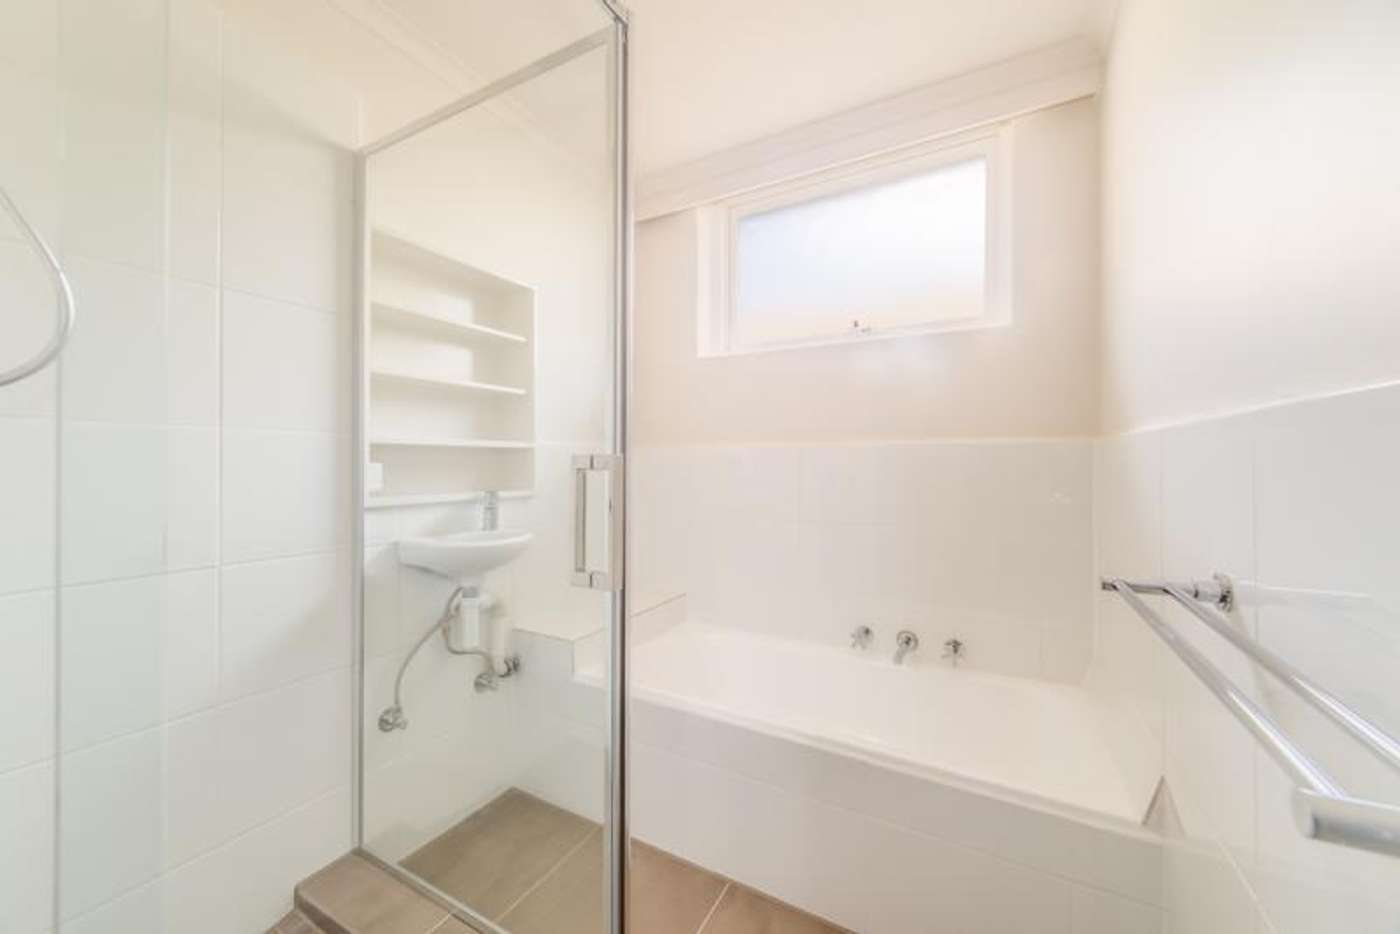 Sixth view of Homely apartment listing, 6/3 Carinya Crescent, Caulfield North VIC 3161